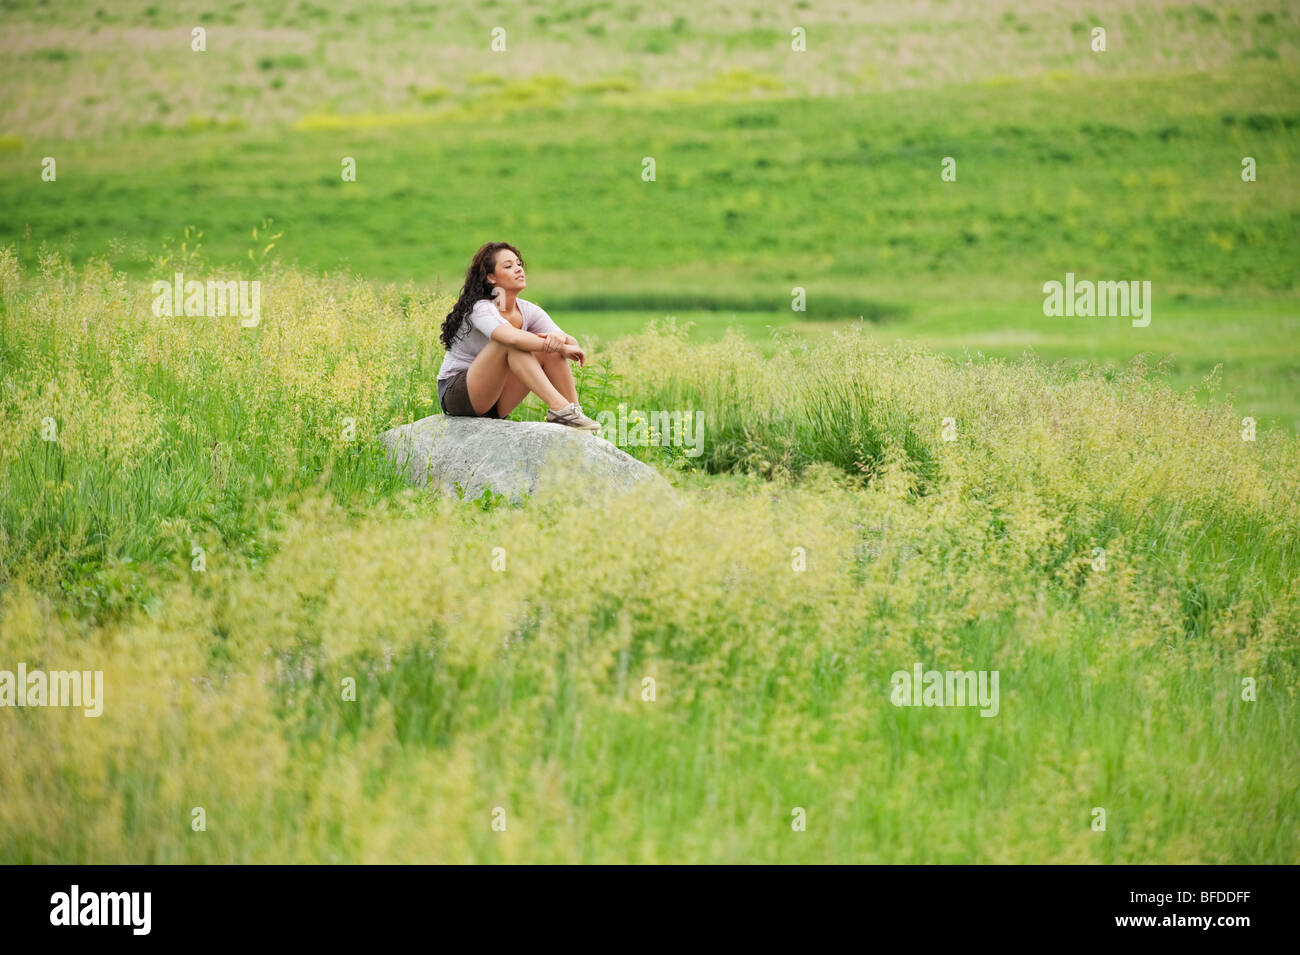 Young woman siting on rock in a bright green field at Spirit Mound, South Dakota. - Stock Image